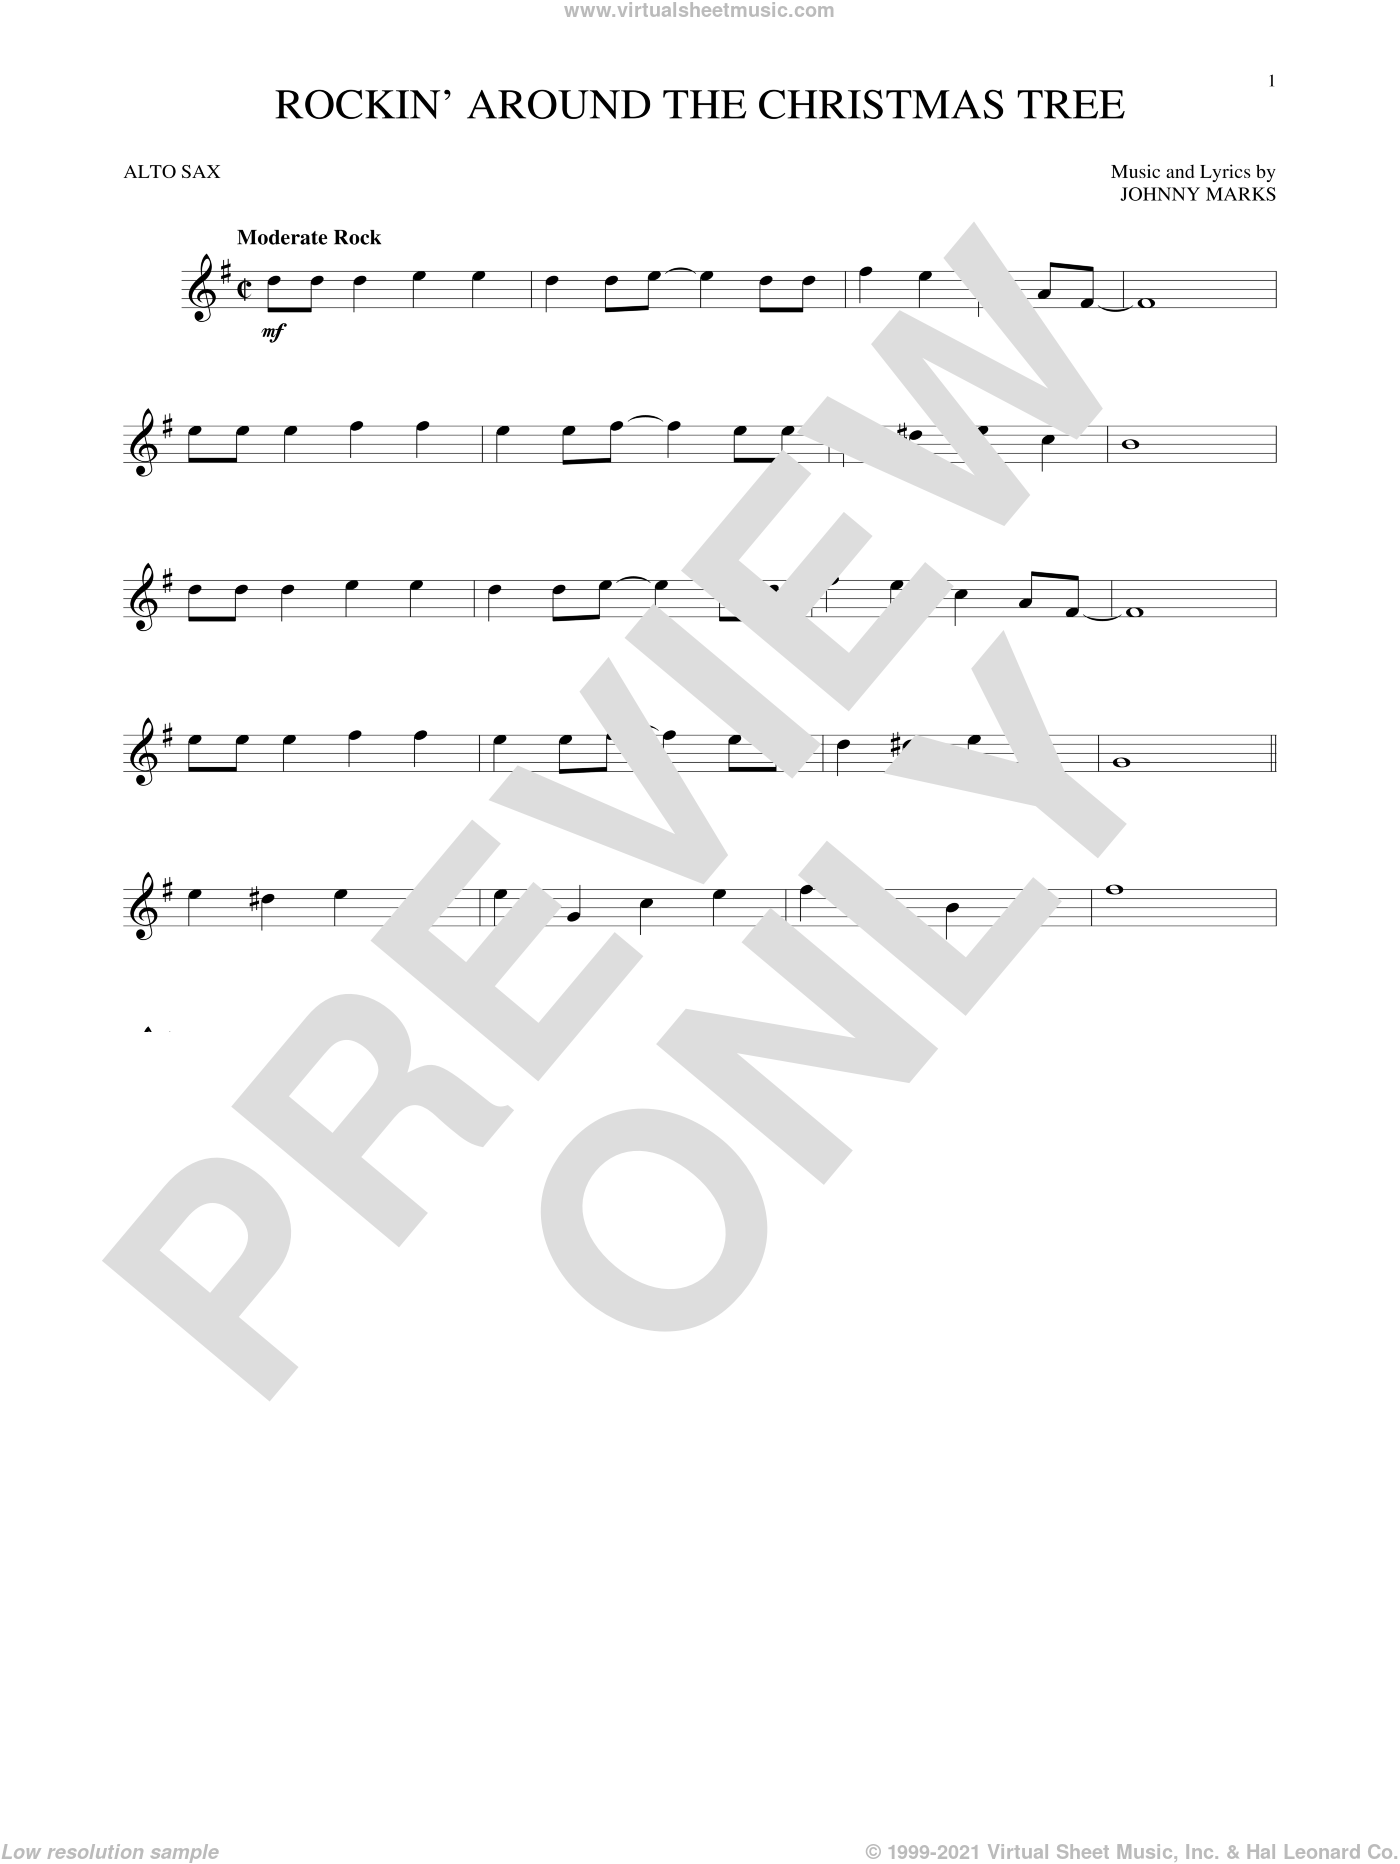 Rockin' Around The Christmas Tree sheet music for alto saxophone solo by Johnny Marks, intermediate skill level